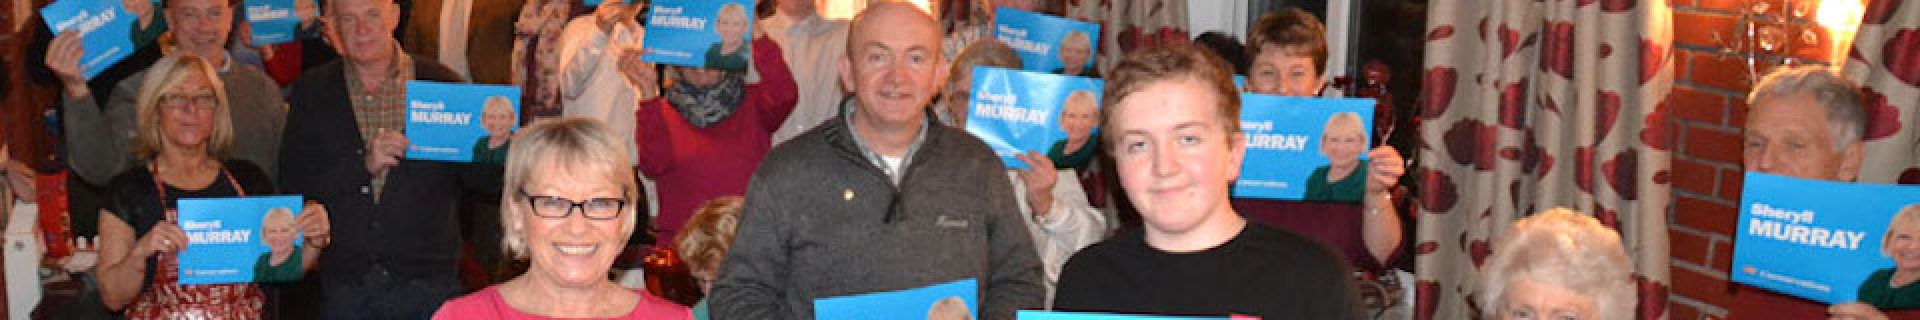 Banner image for Sheryll Murray MP